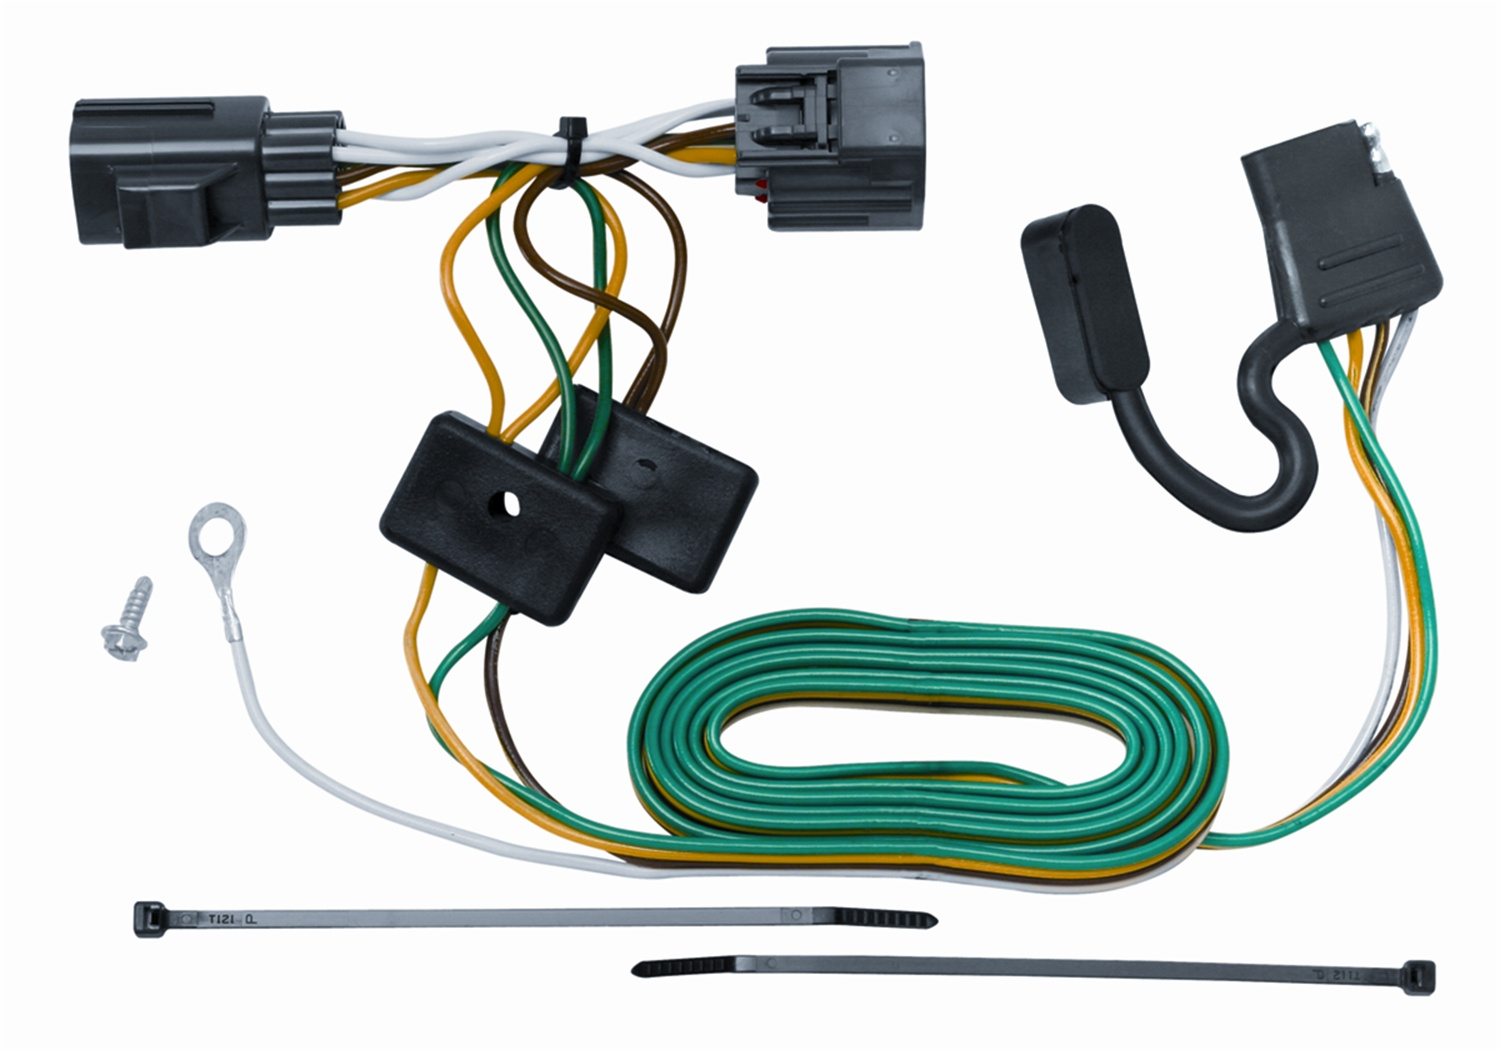 Jeep Wrangler Trailer Wiring Manual Of Diagram 2013 Hitch Vehicle To Harness Connector For 07 12 Rh Walmart Com